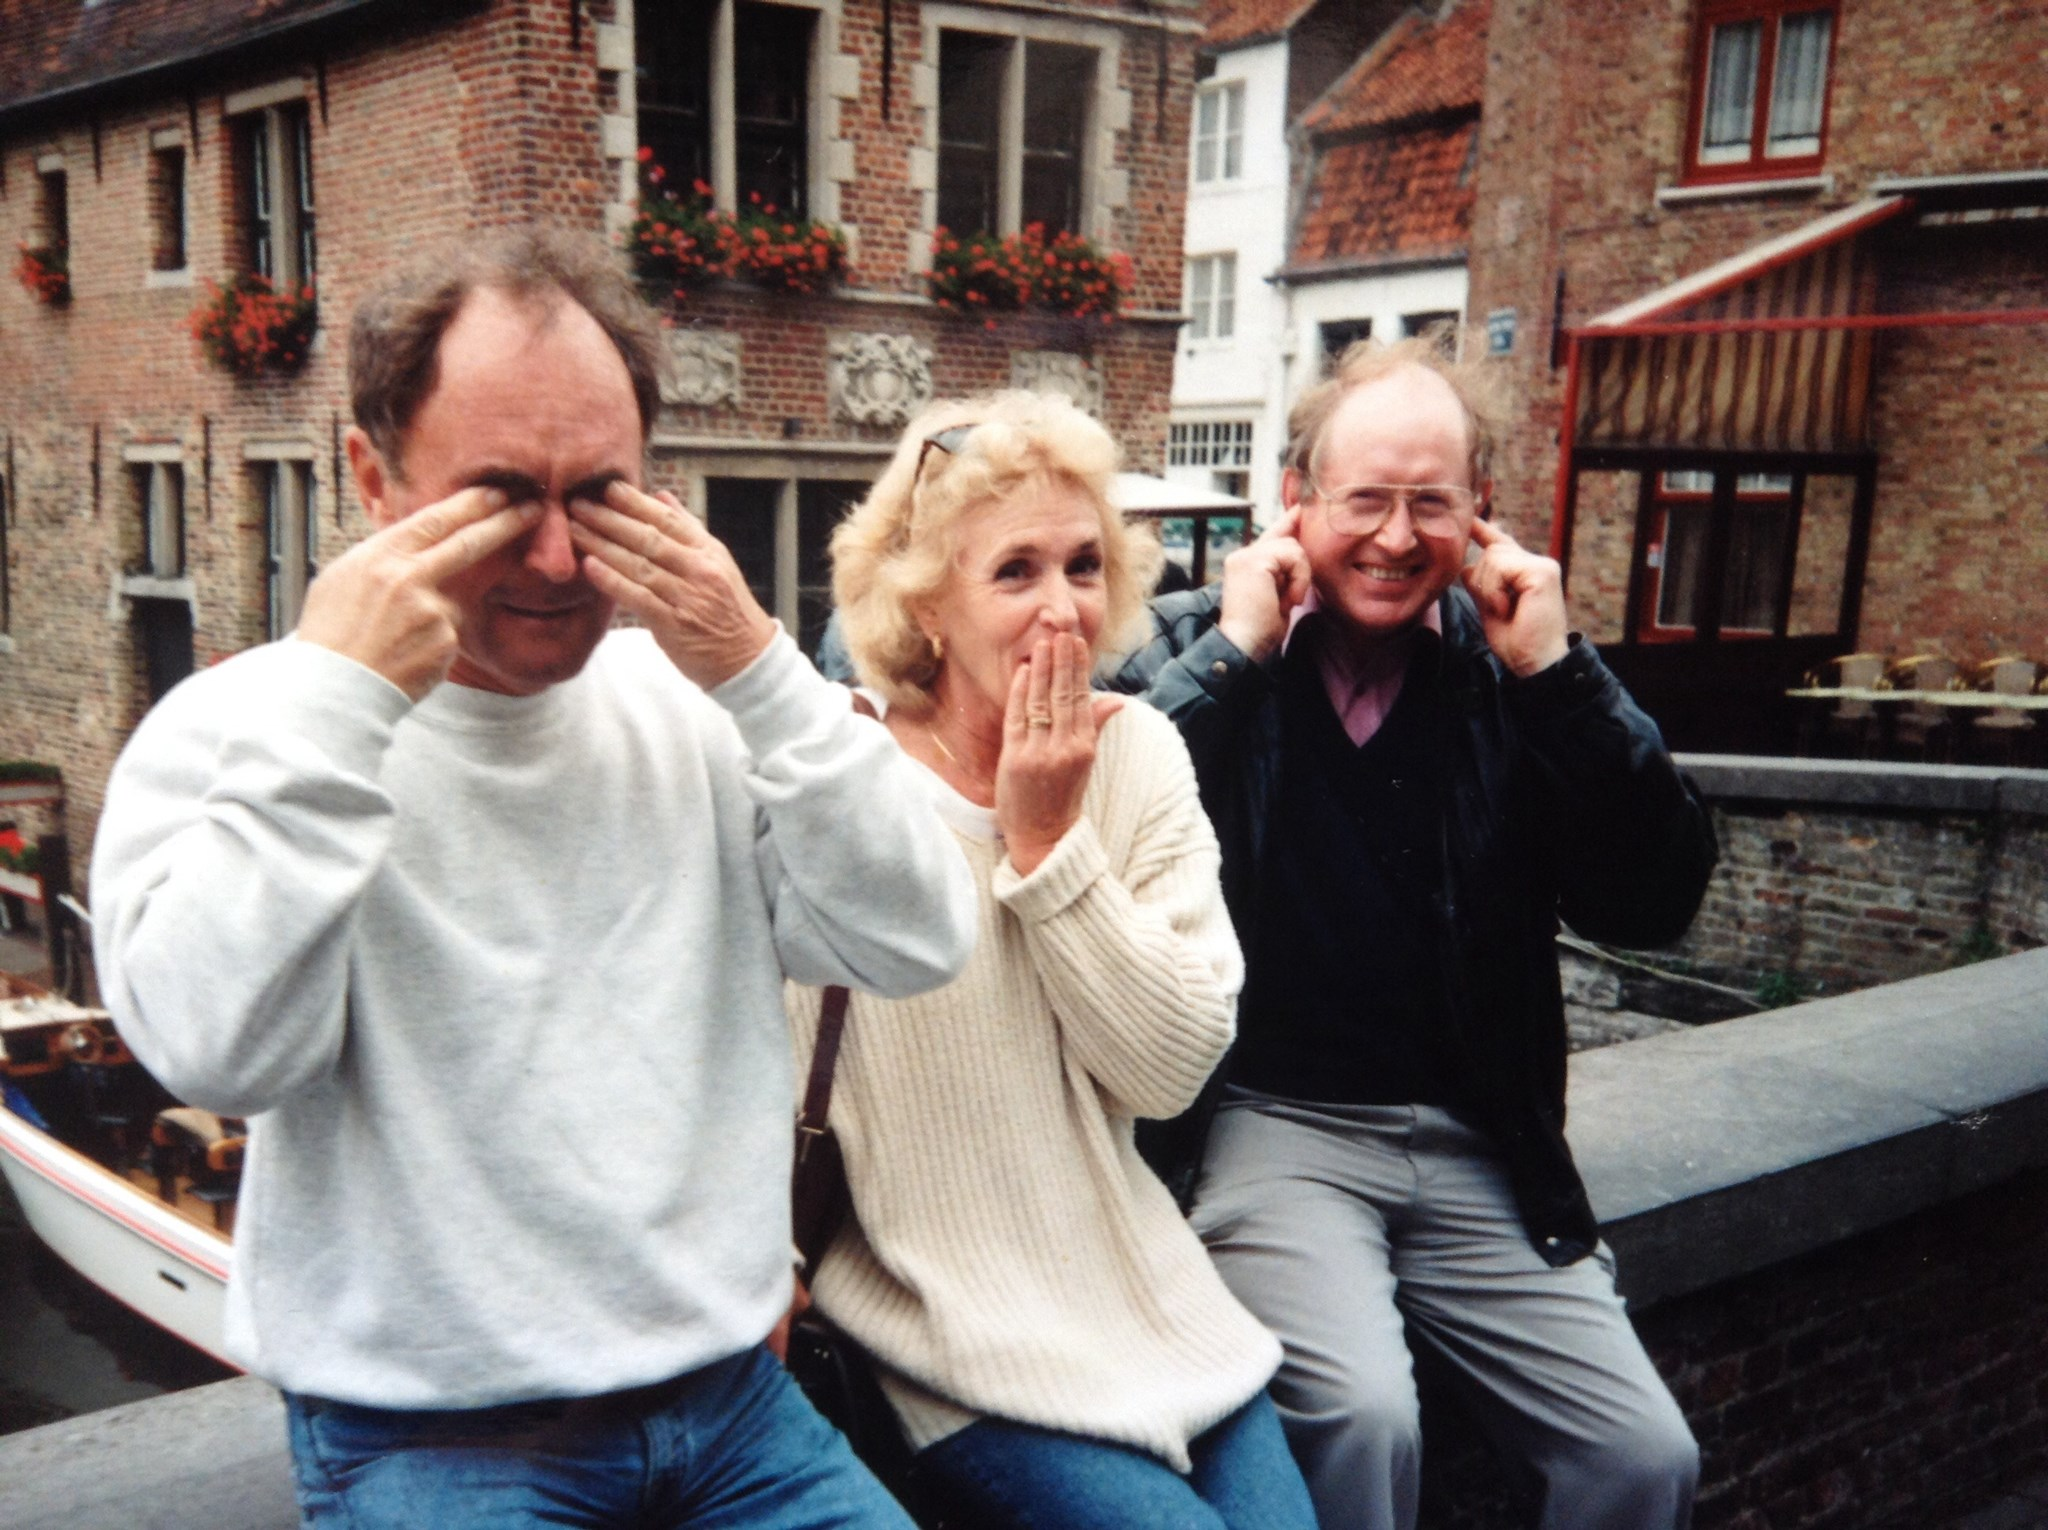 Brian June & David . The 3 wise monkeys in Bruges .